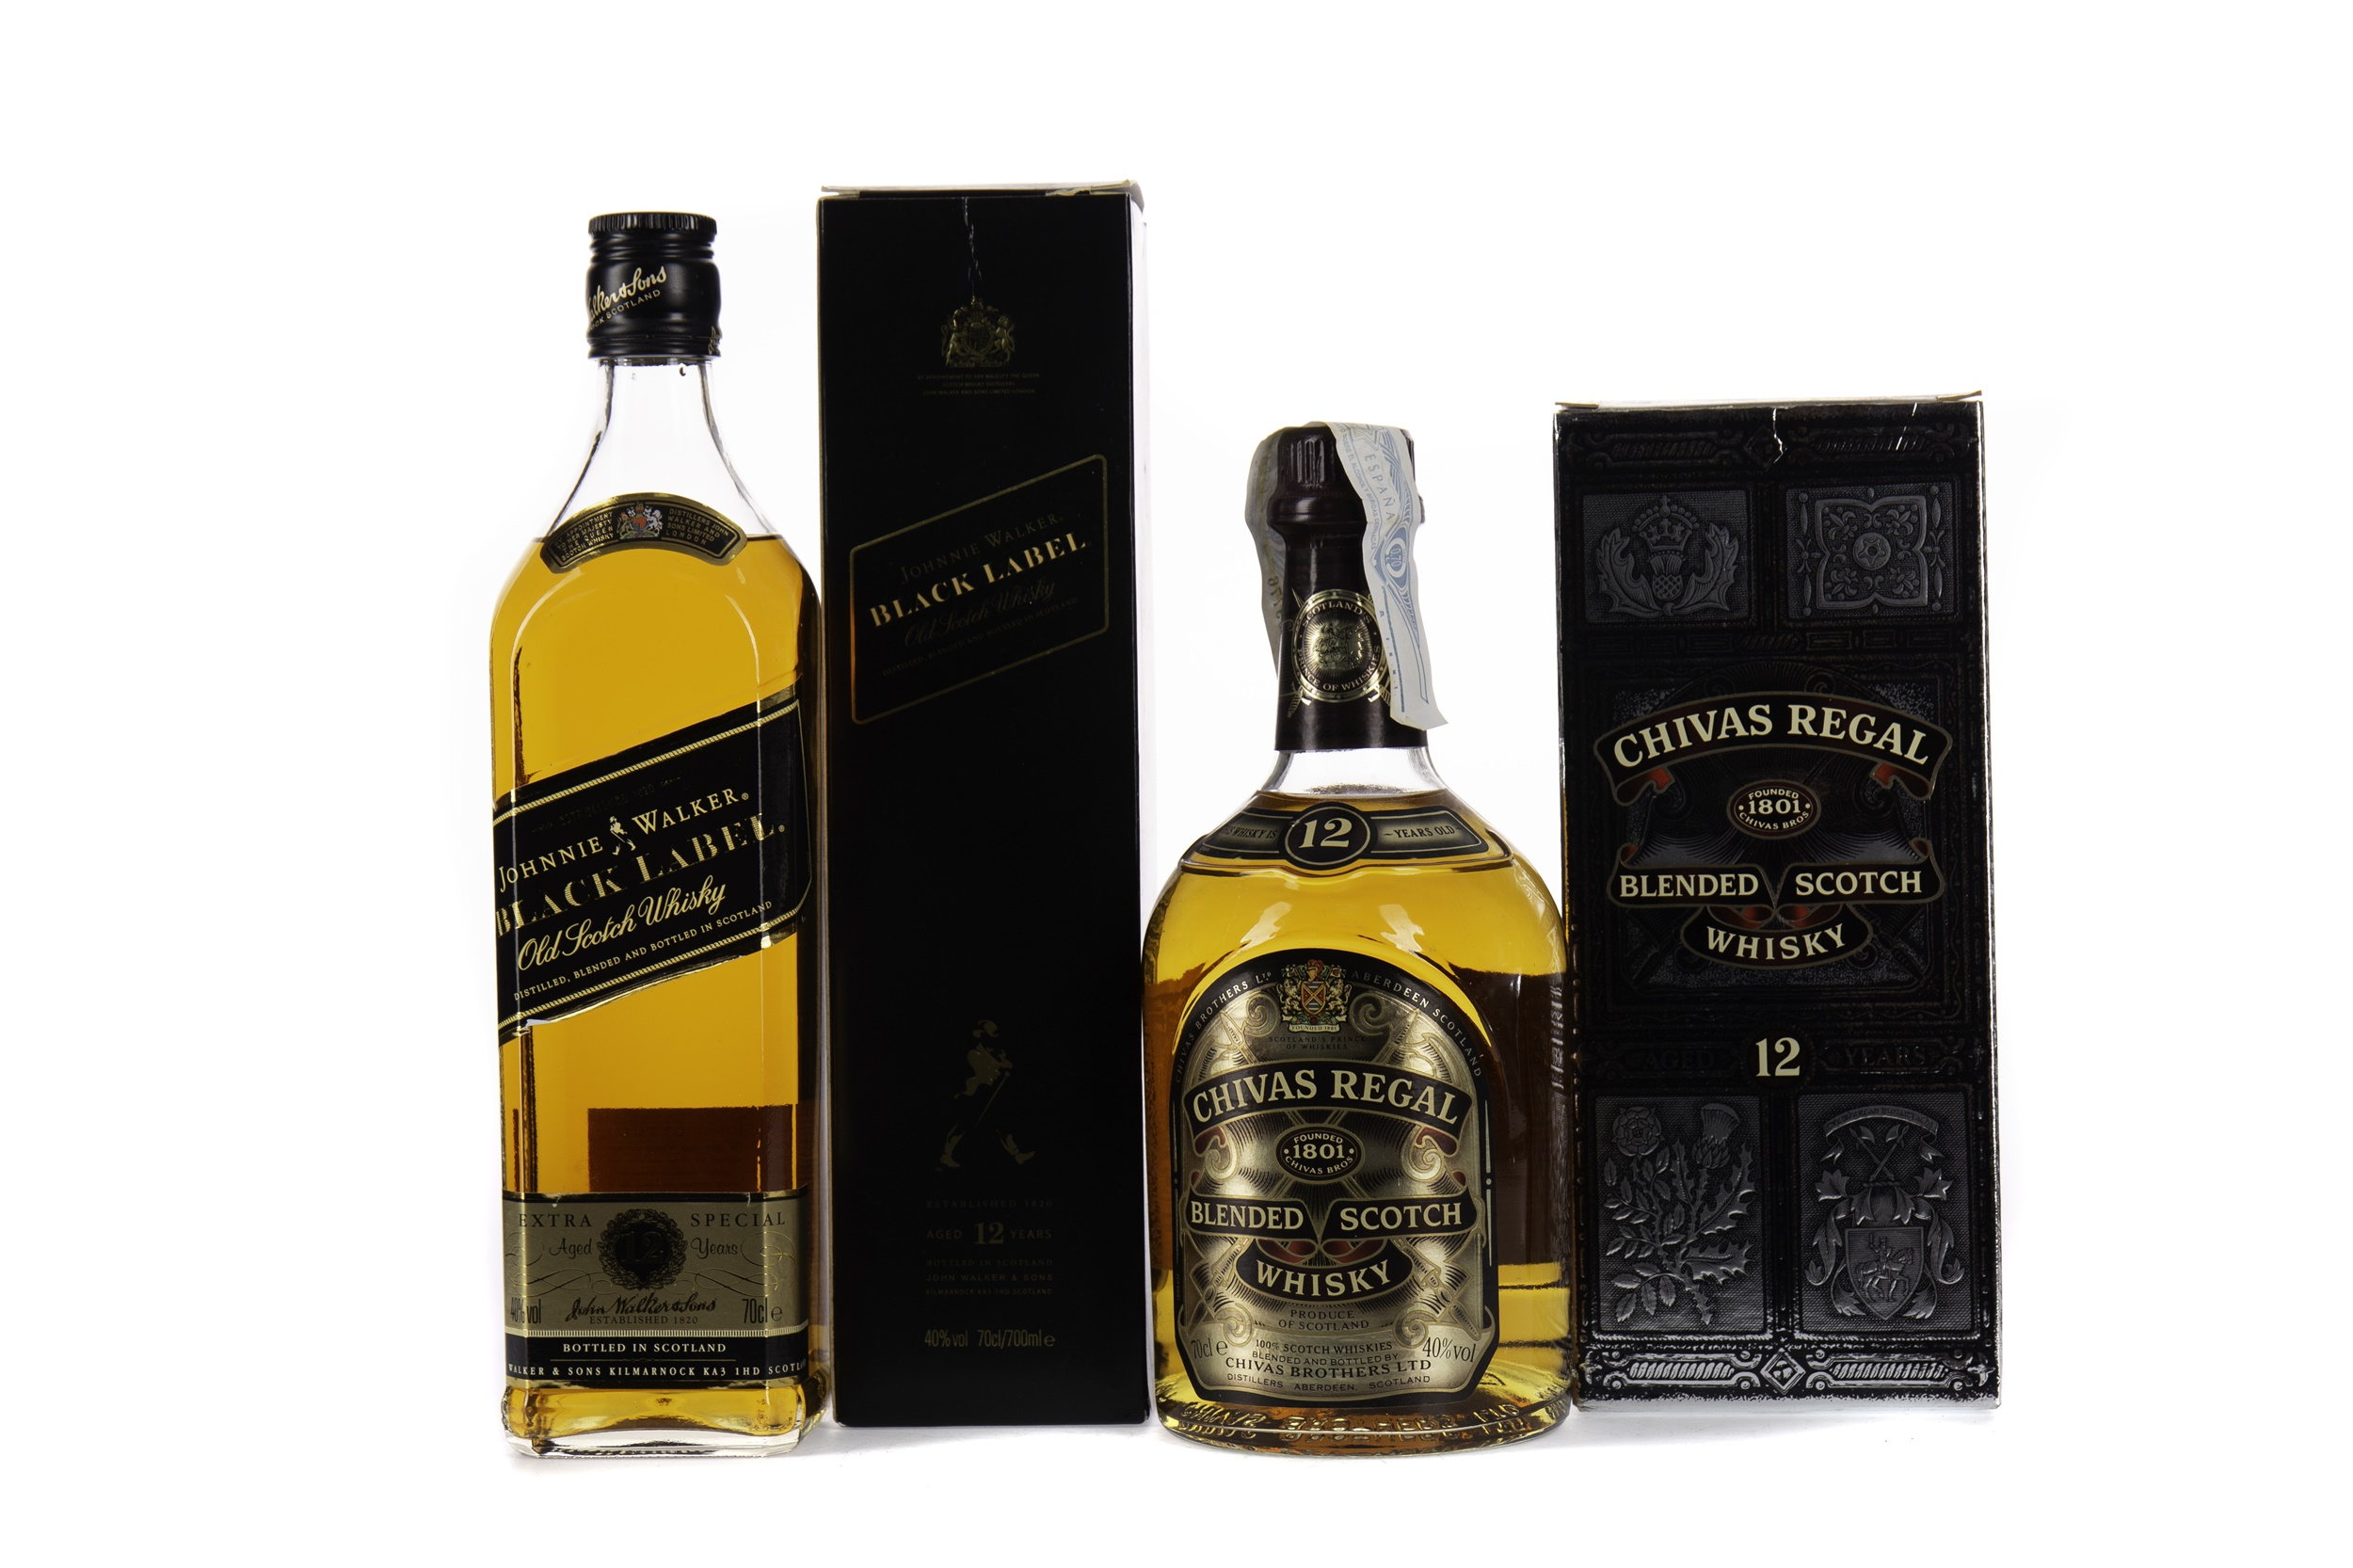 JOHNNIE WALKER BLACK LABEL AGED 12 YEARS AND CHIVAS REGAL AGED 12 YEARS